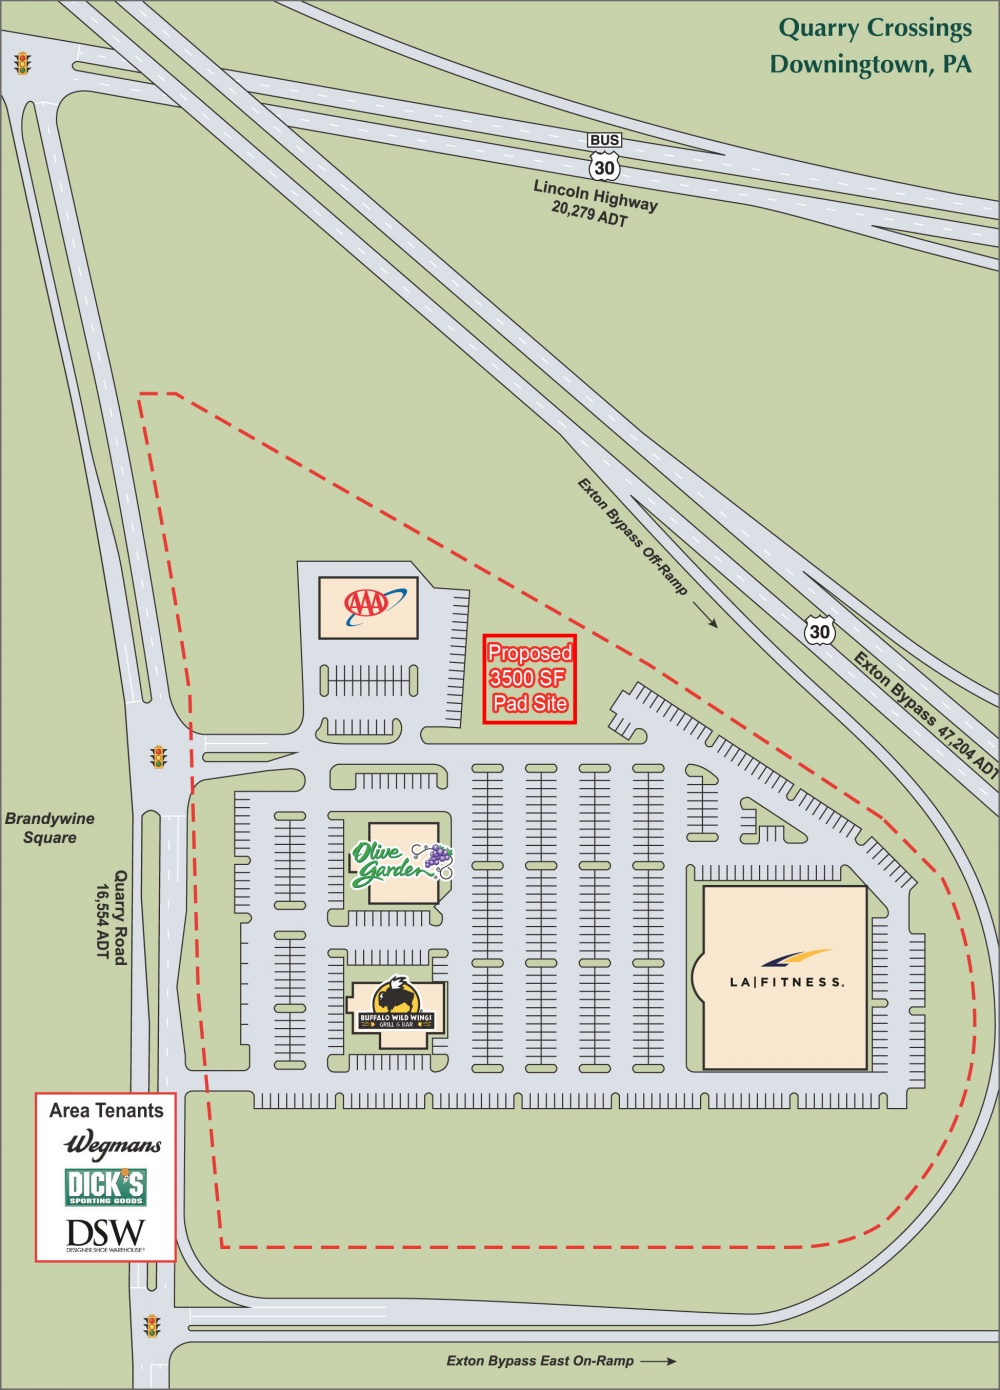 Paramount Realty Services Quarry Crossings